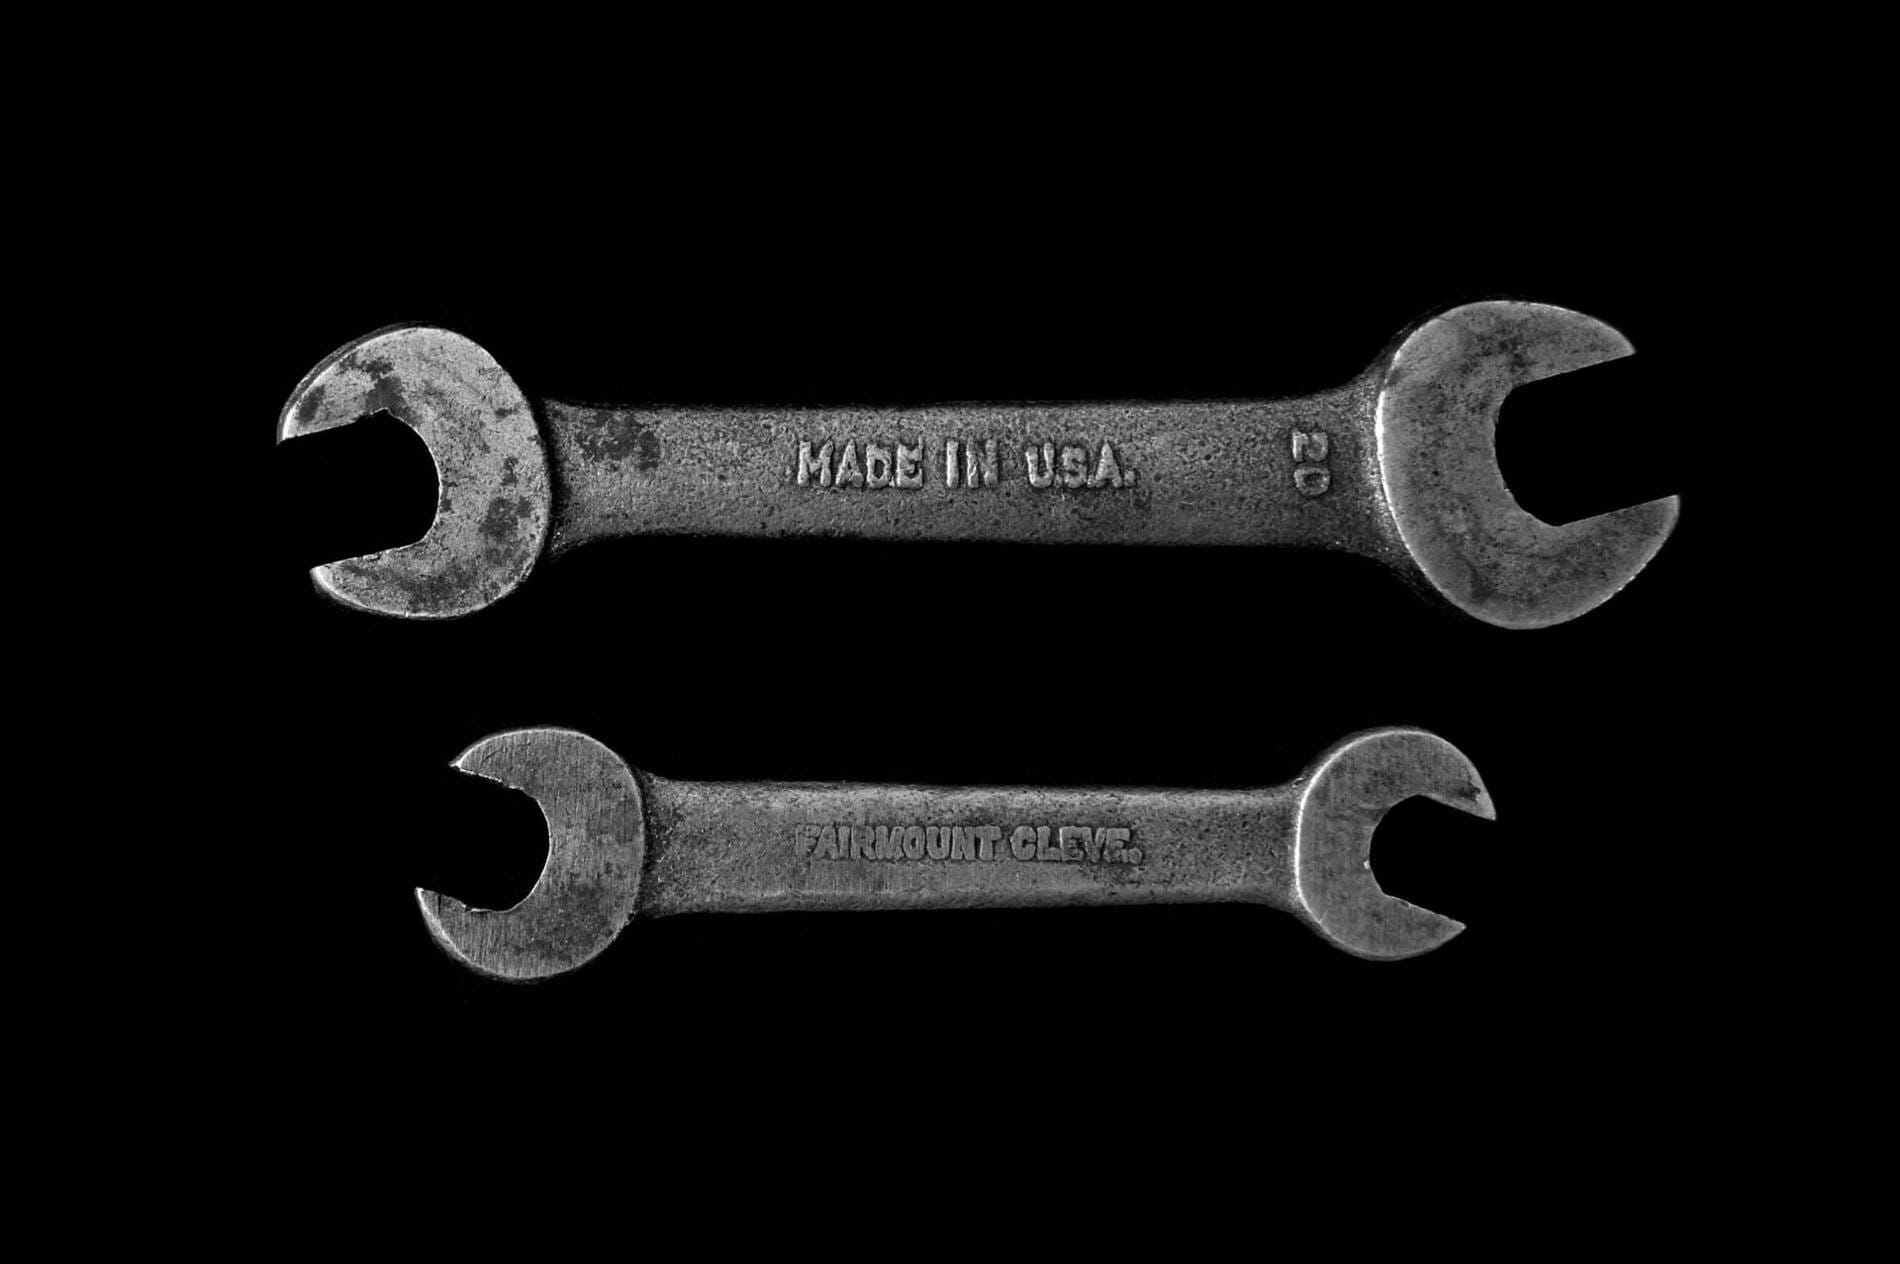 How to cooperate with SEO specialists - 2 wrenches - number 20 made in USA and second one made by farmount cleve